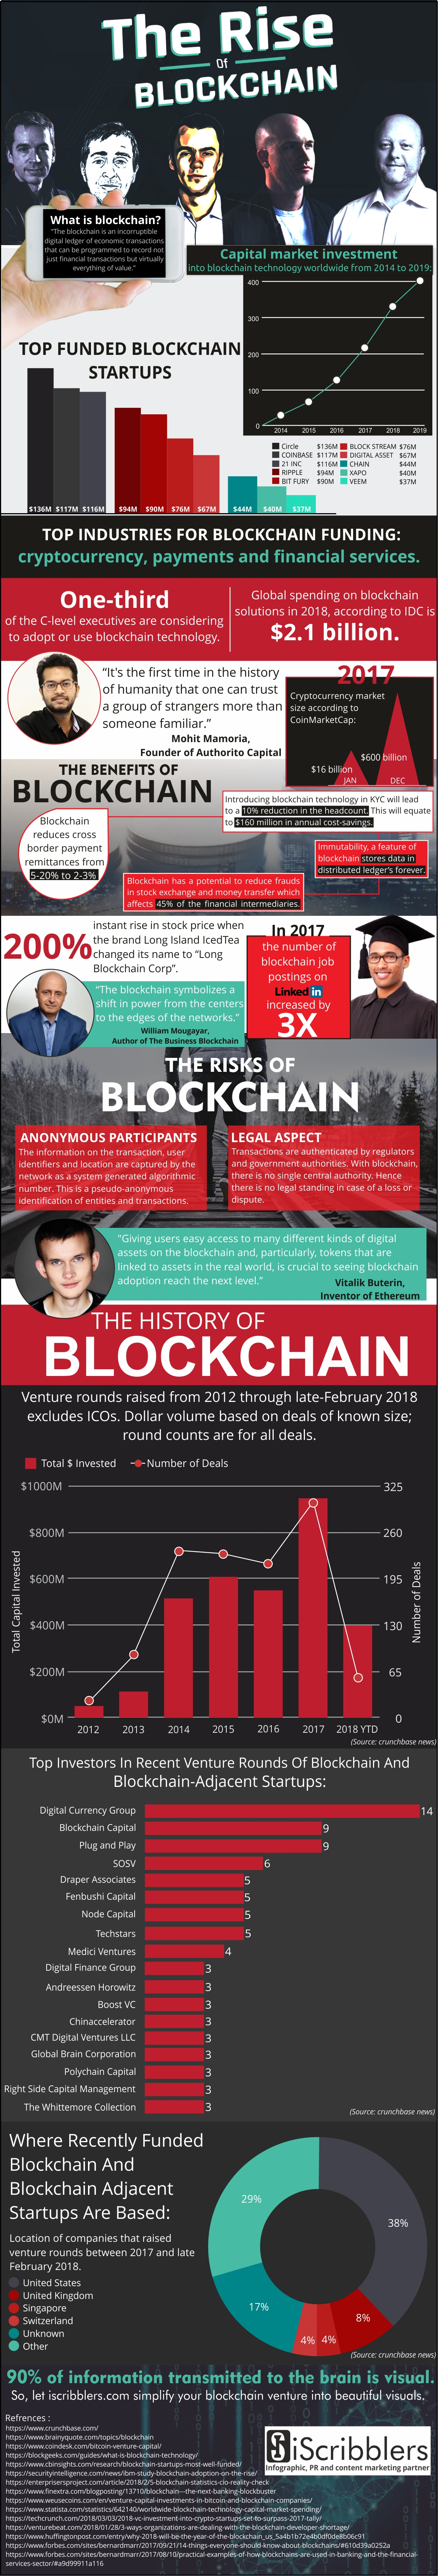 rise of blockchain technology